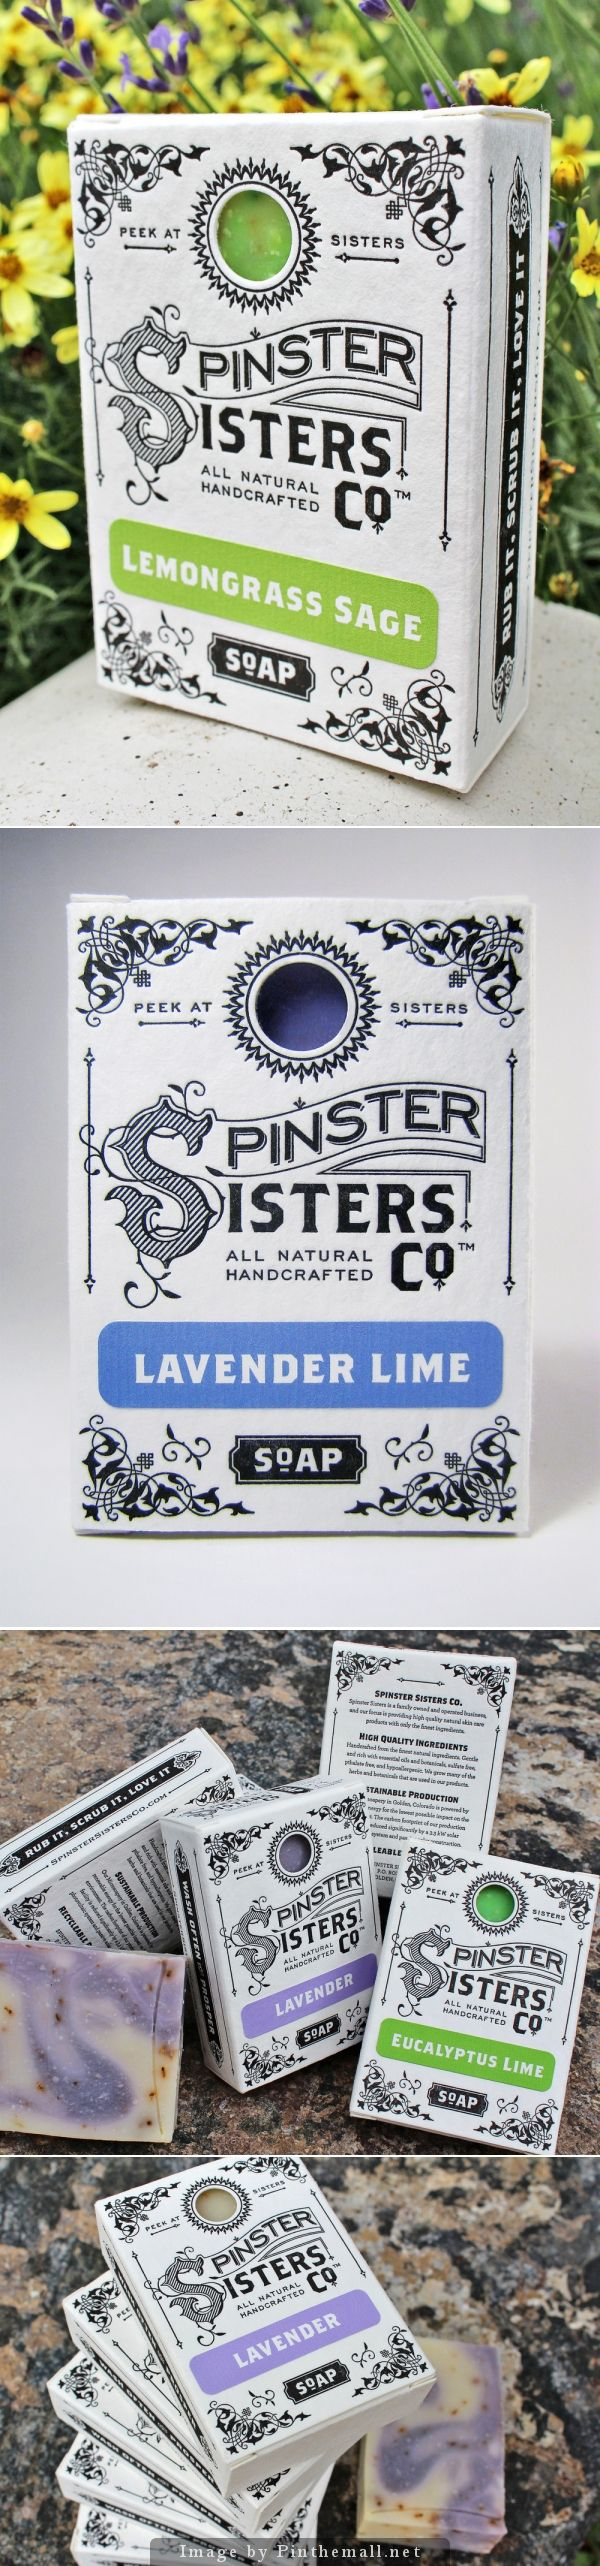 Spinster Sister Co. Soap Bar designed by Andrew Cruz